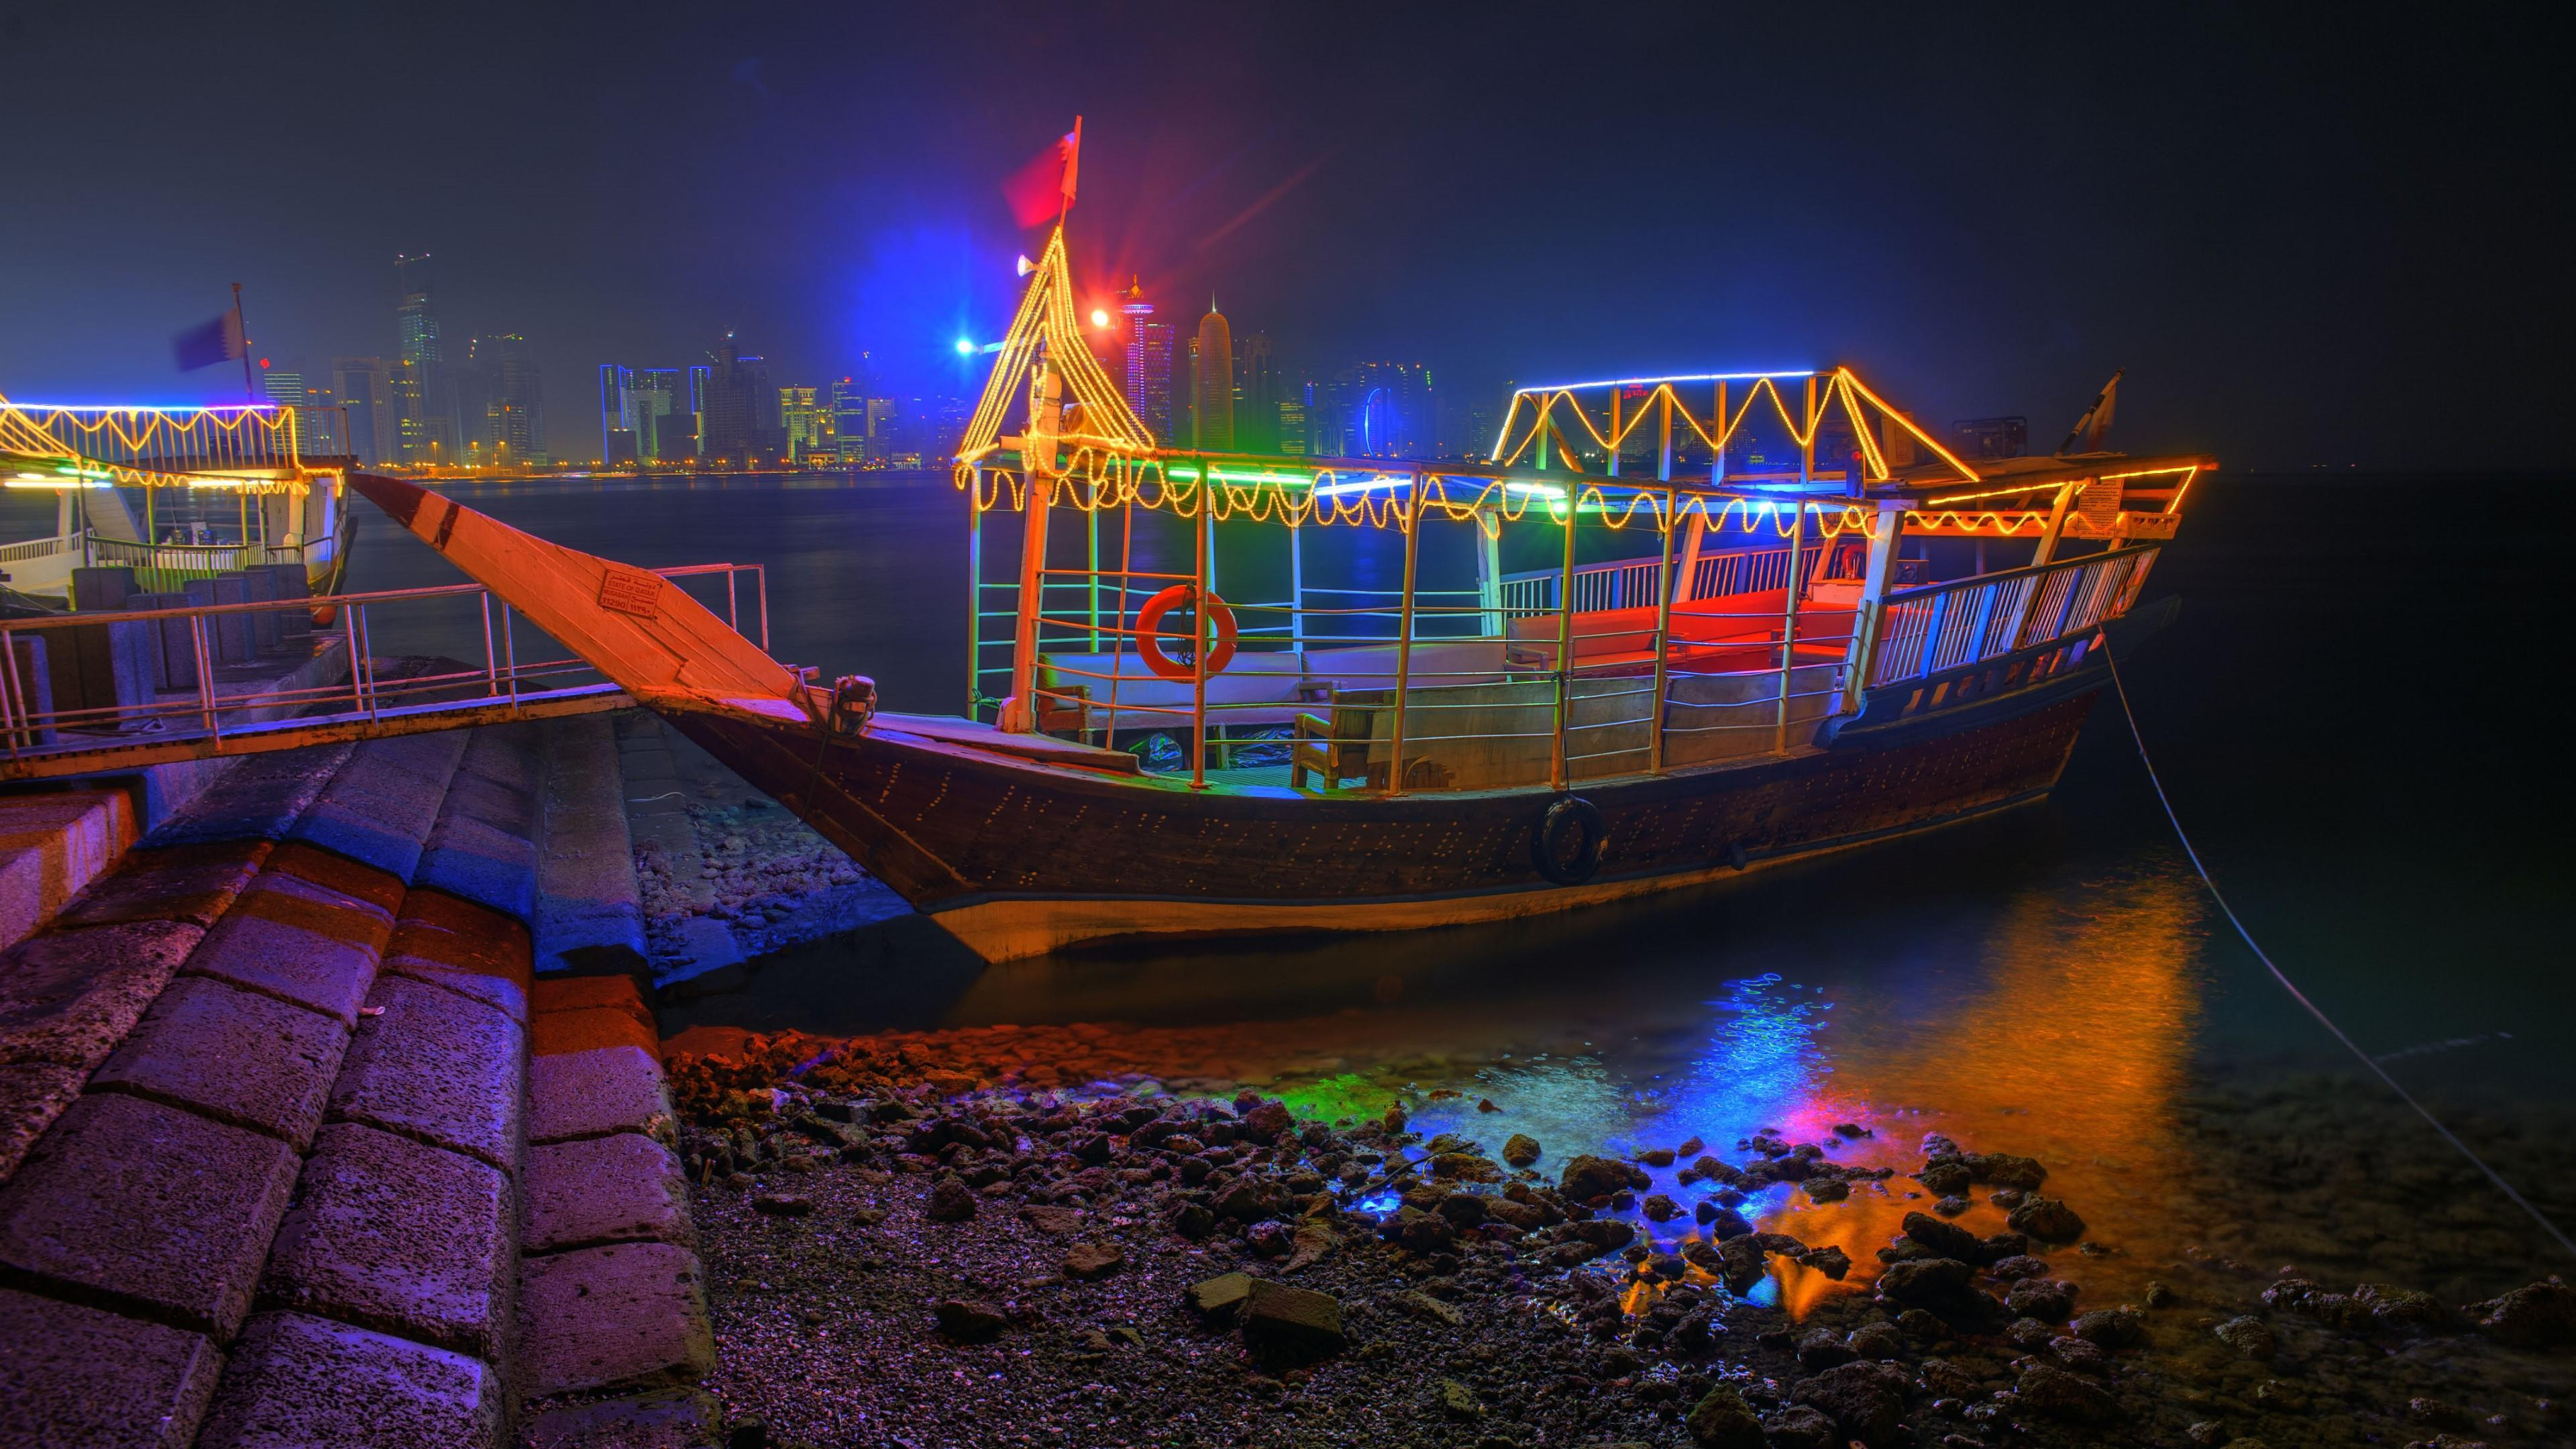 Colorful Illuminated Dhow Boat At Night